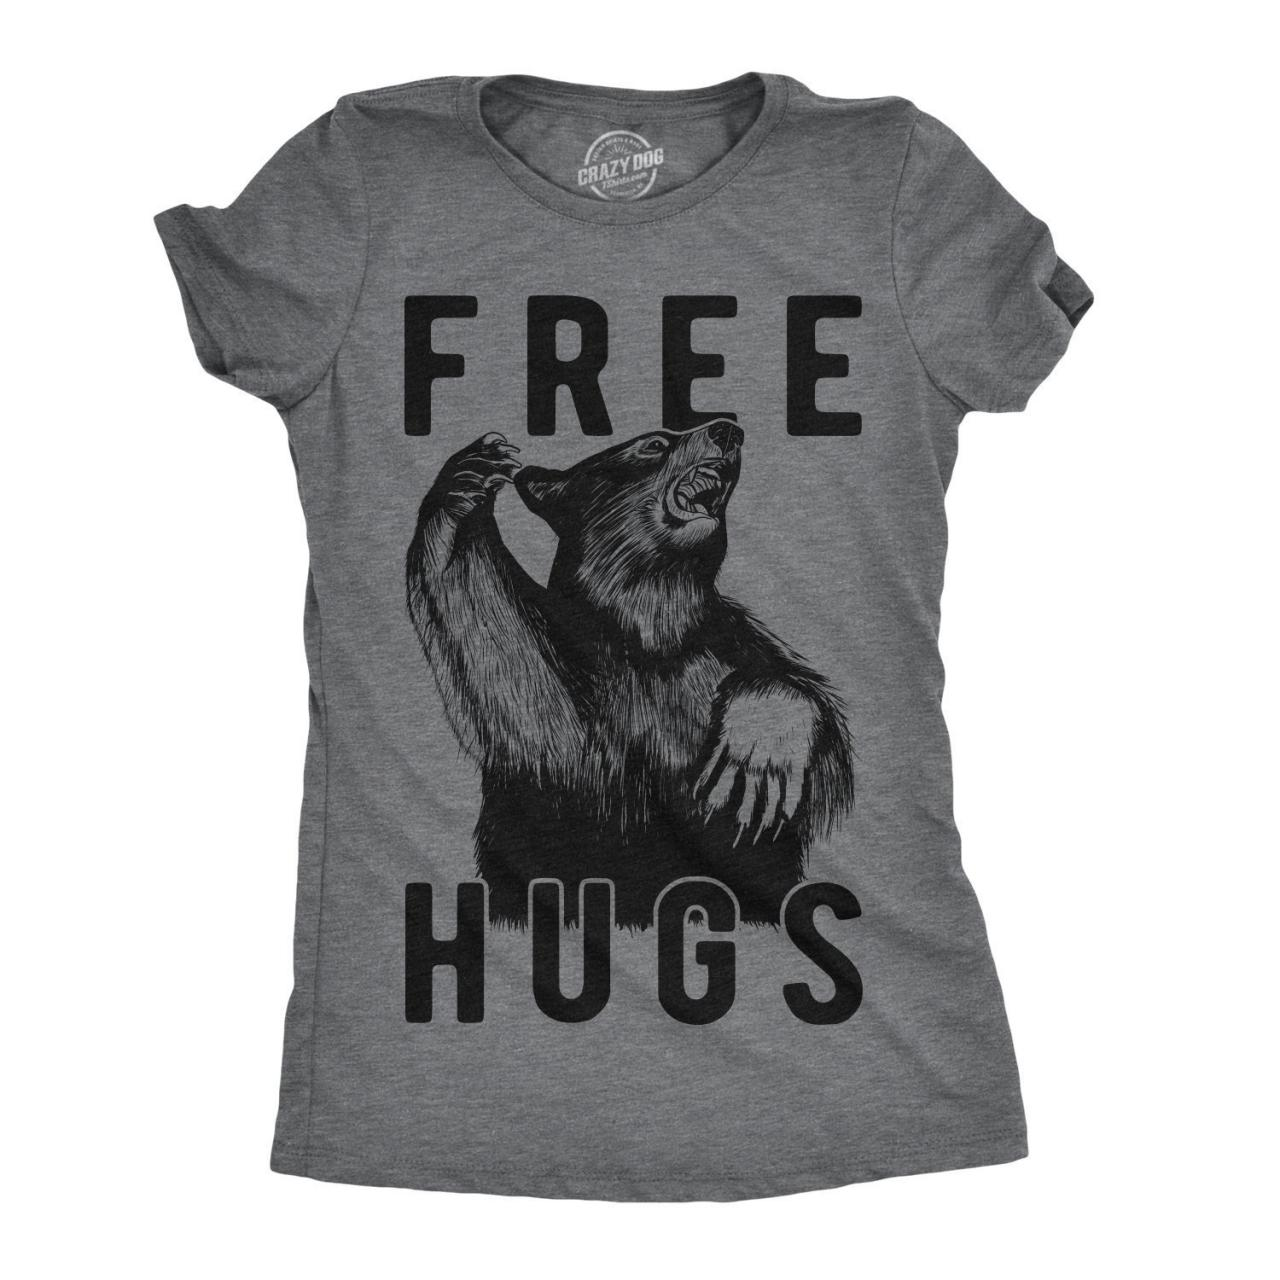 Free Hugs Angry Bear Shirt, Funny Bear Shirts, Camping Shirt Women, Great Outdoors, Grizzly Beer Tee, Cool Bear Shirt, Funny Shirt Mom